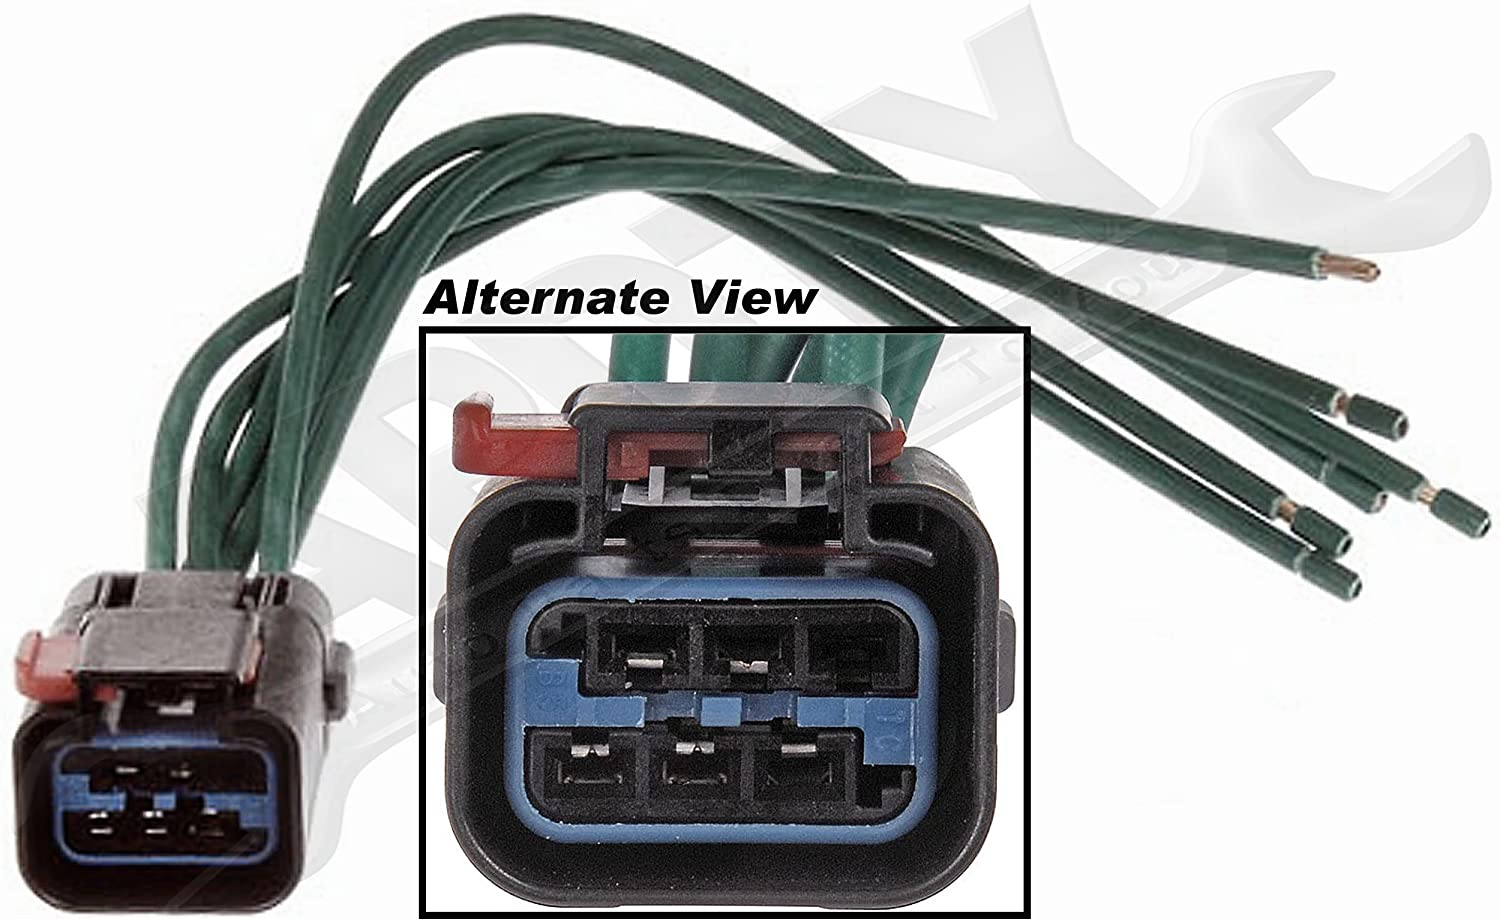 Amazon.com: APDTY 756614 Wiring Harness Pigtail Connector Kit ...